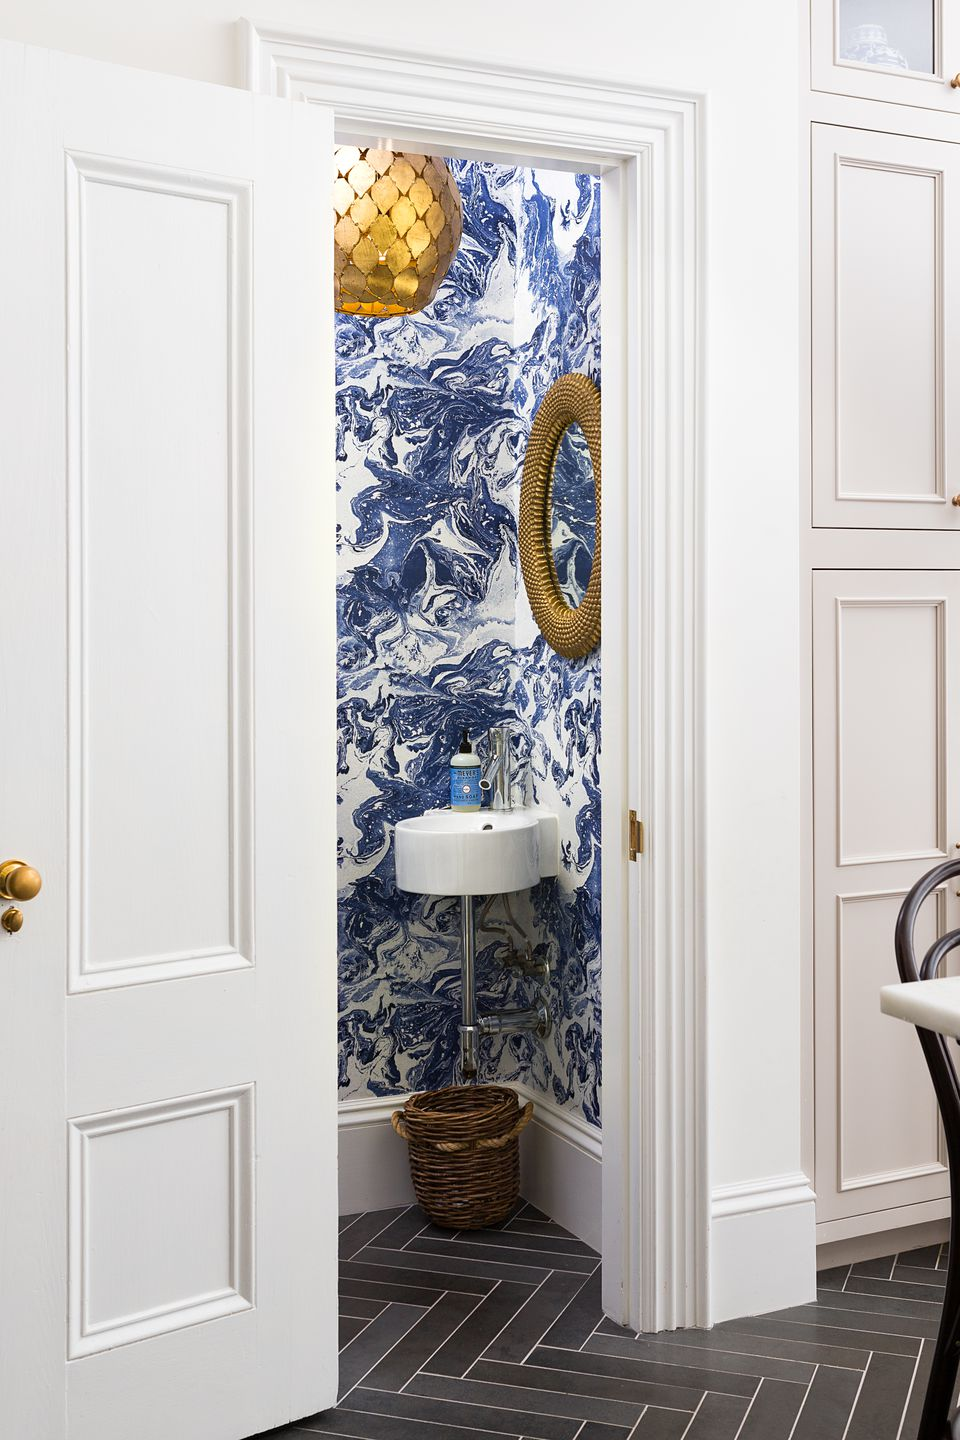 Inspired by wallpaper in her parents' California home, Garlough chose an abstract pattern for the powder room off the kitchen.